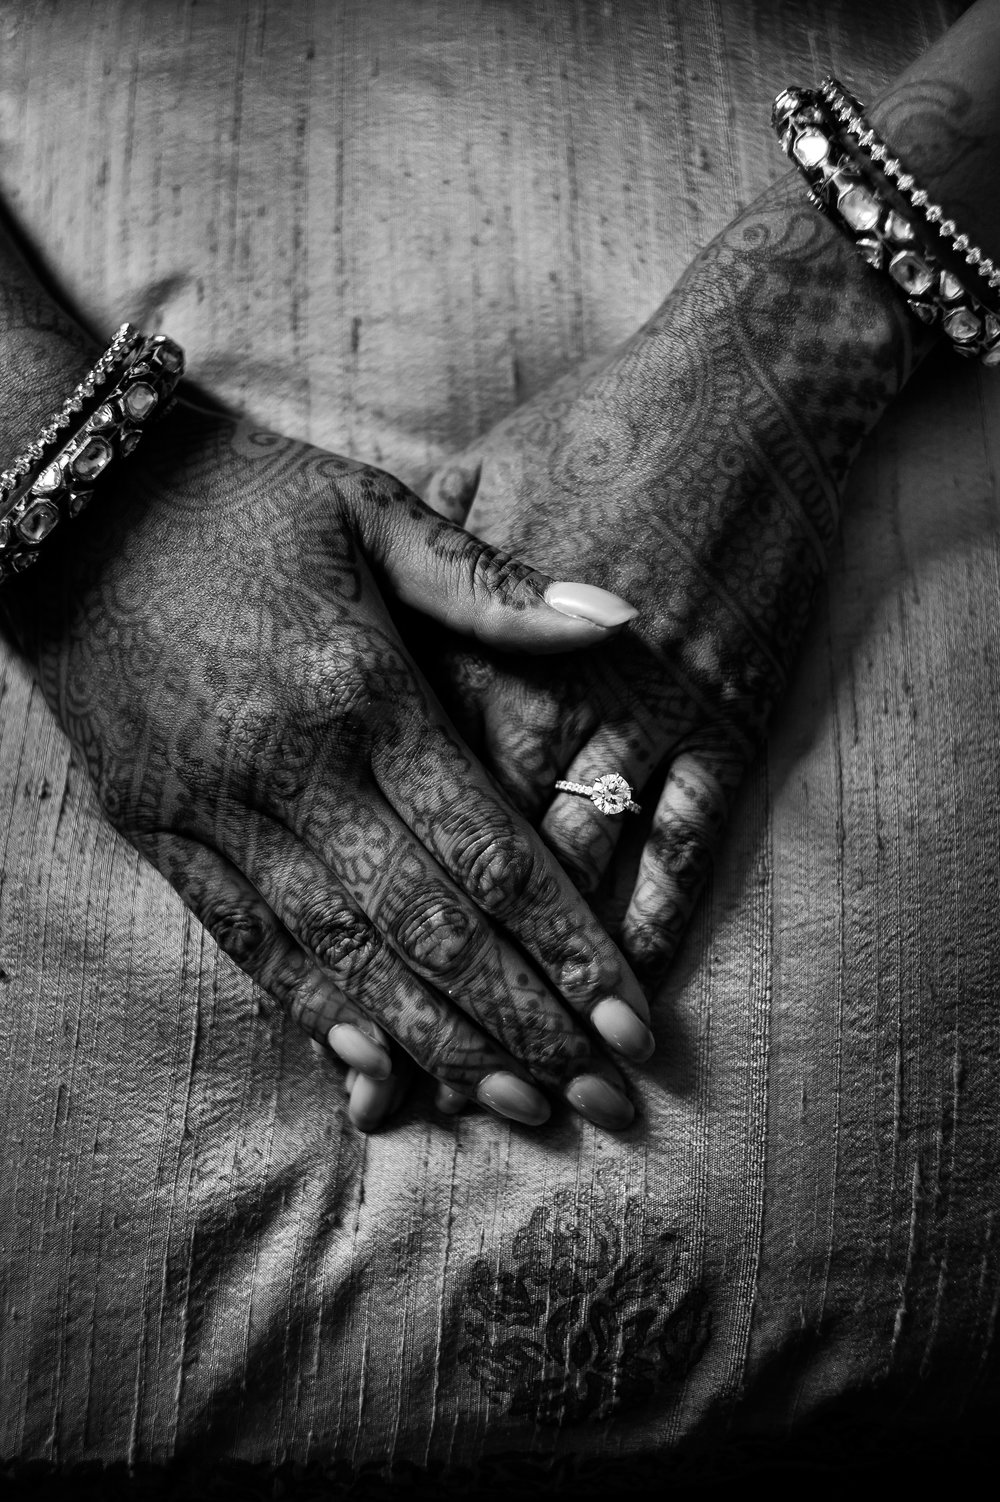 When supporting the joining of two people in love there is a joy that shines brighter than the garments we adorn our earthly bodies in